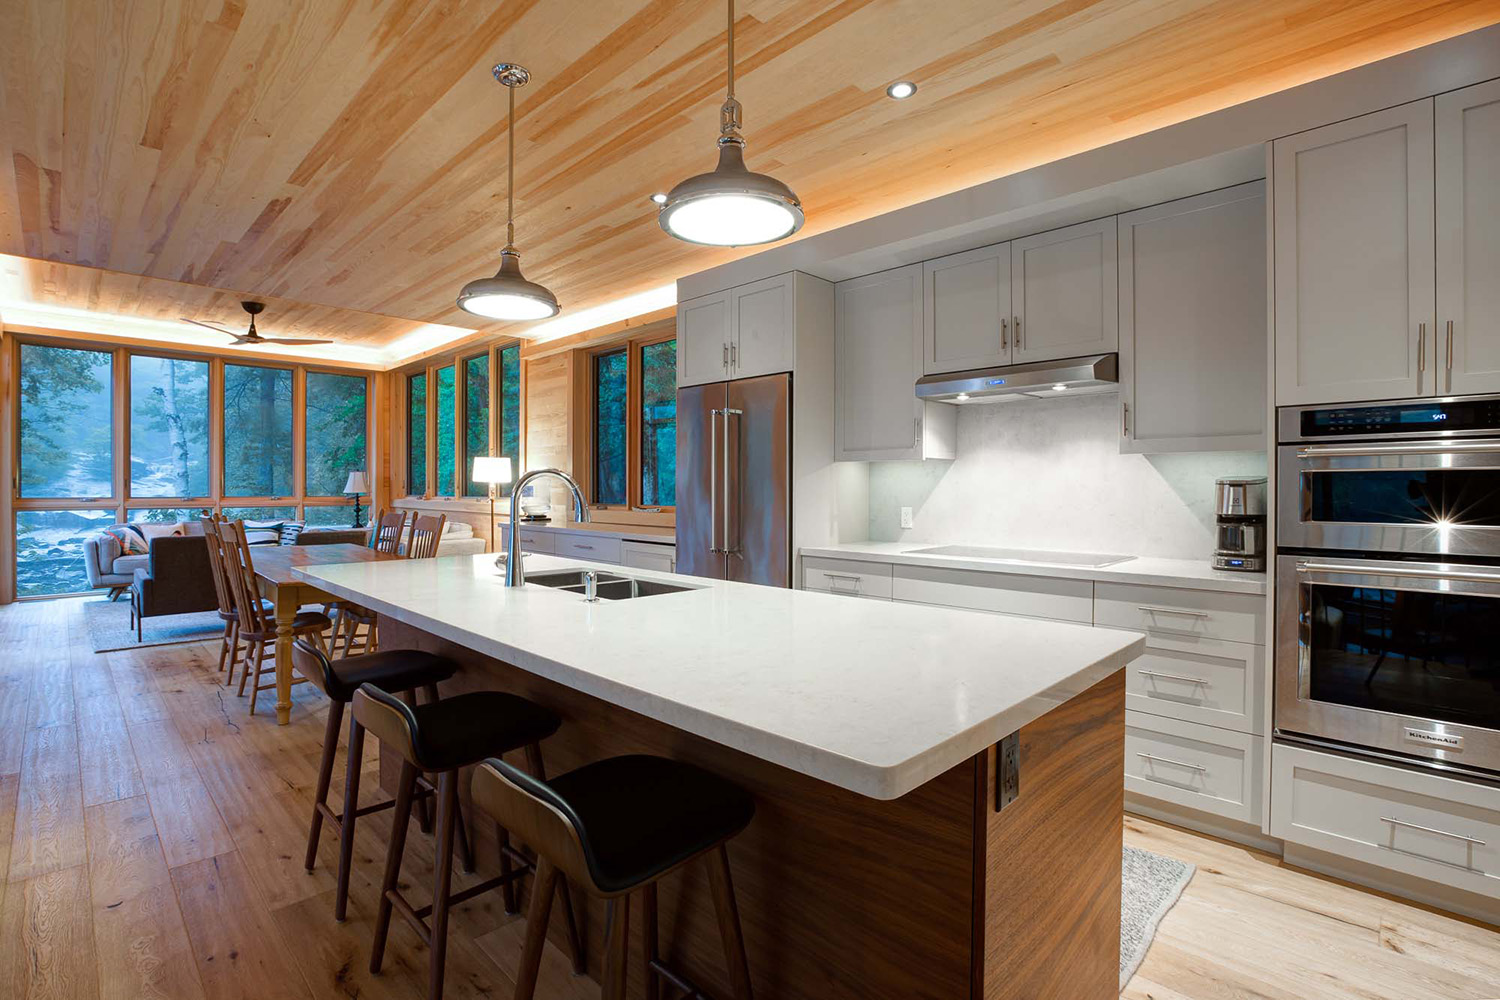 Contemporary custom kitchen with walnut island and gray painted shaker cabinetry